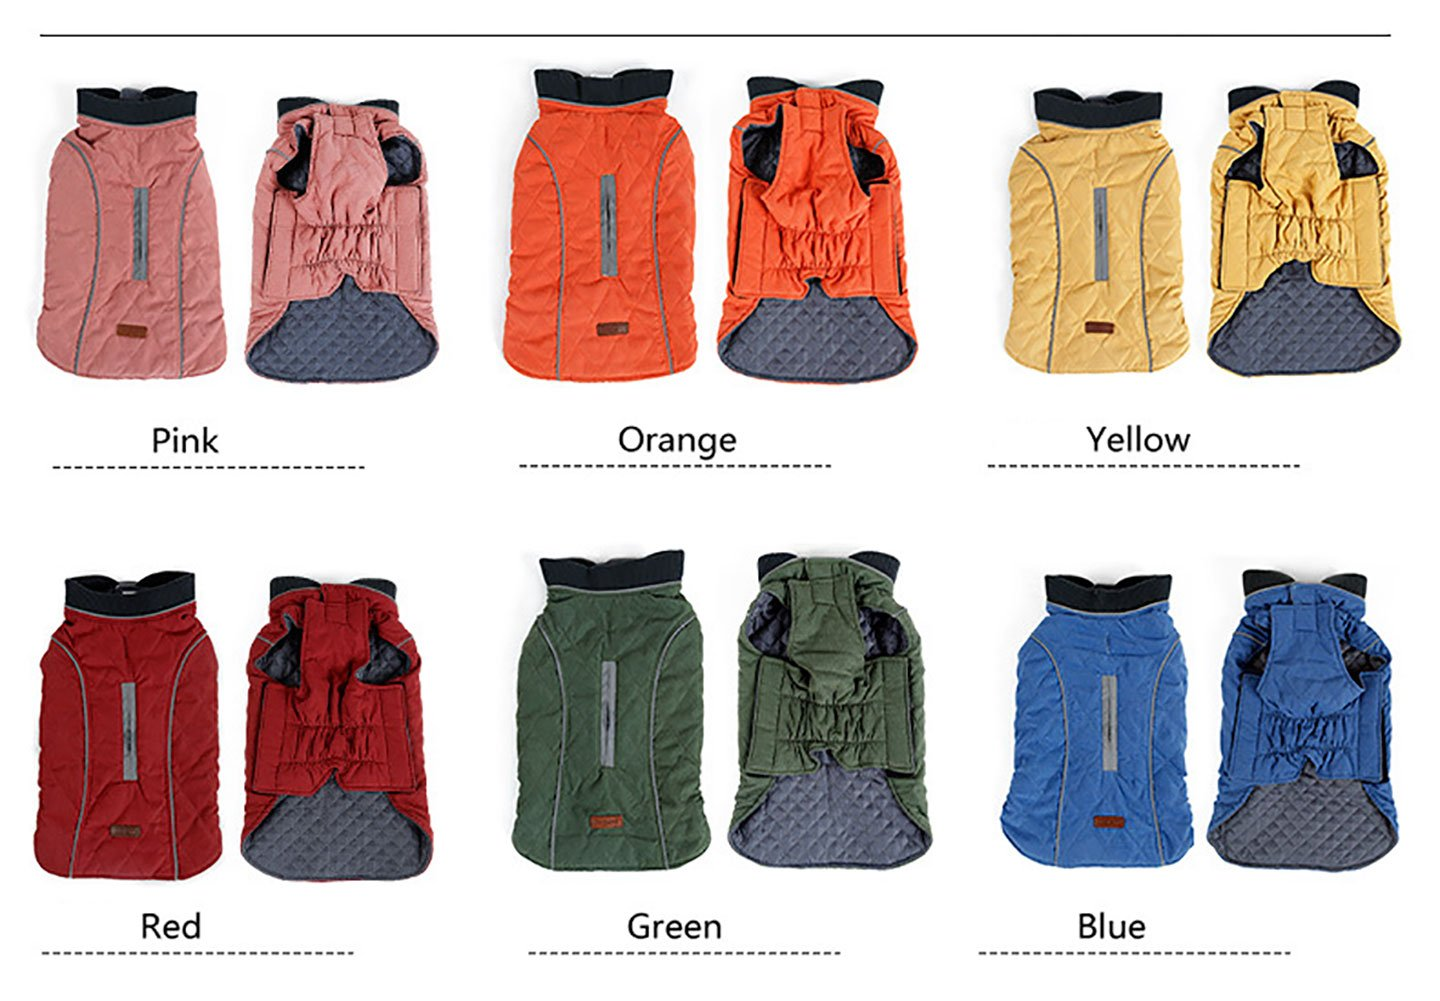 Cold Winter Dog Pet Coat Jacket Vest Warm Outfit Clothes for Small Medium Large Dogs 6